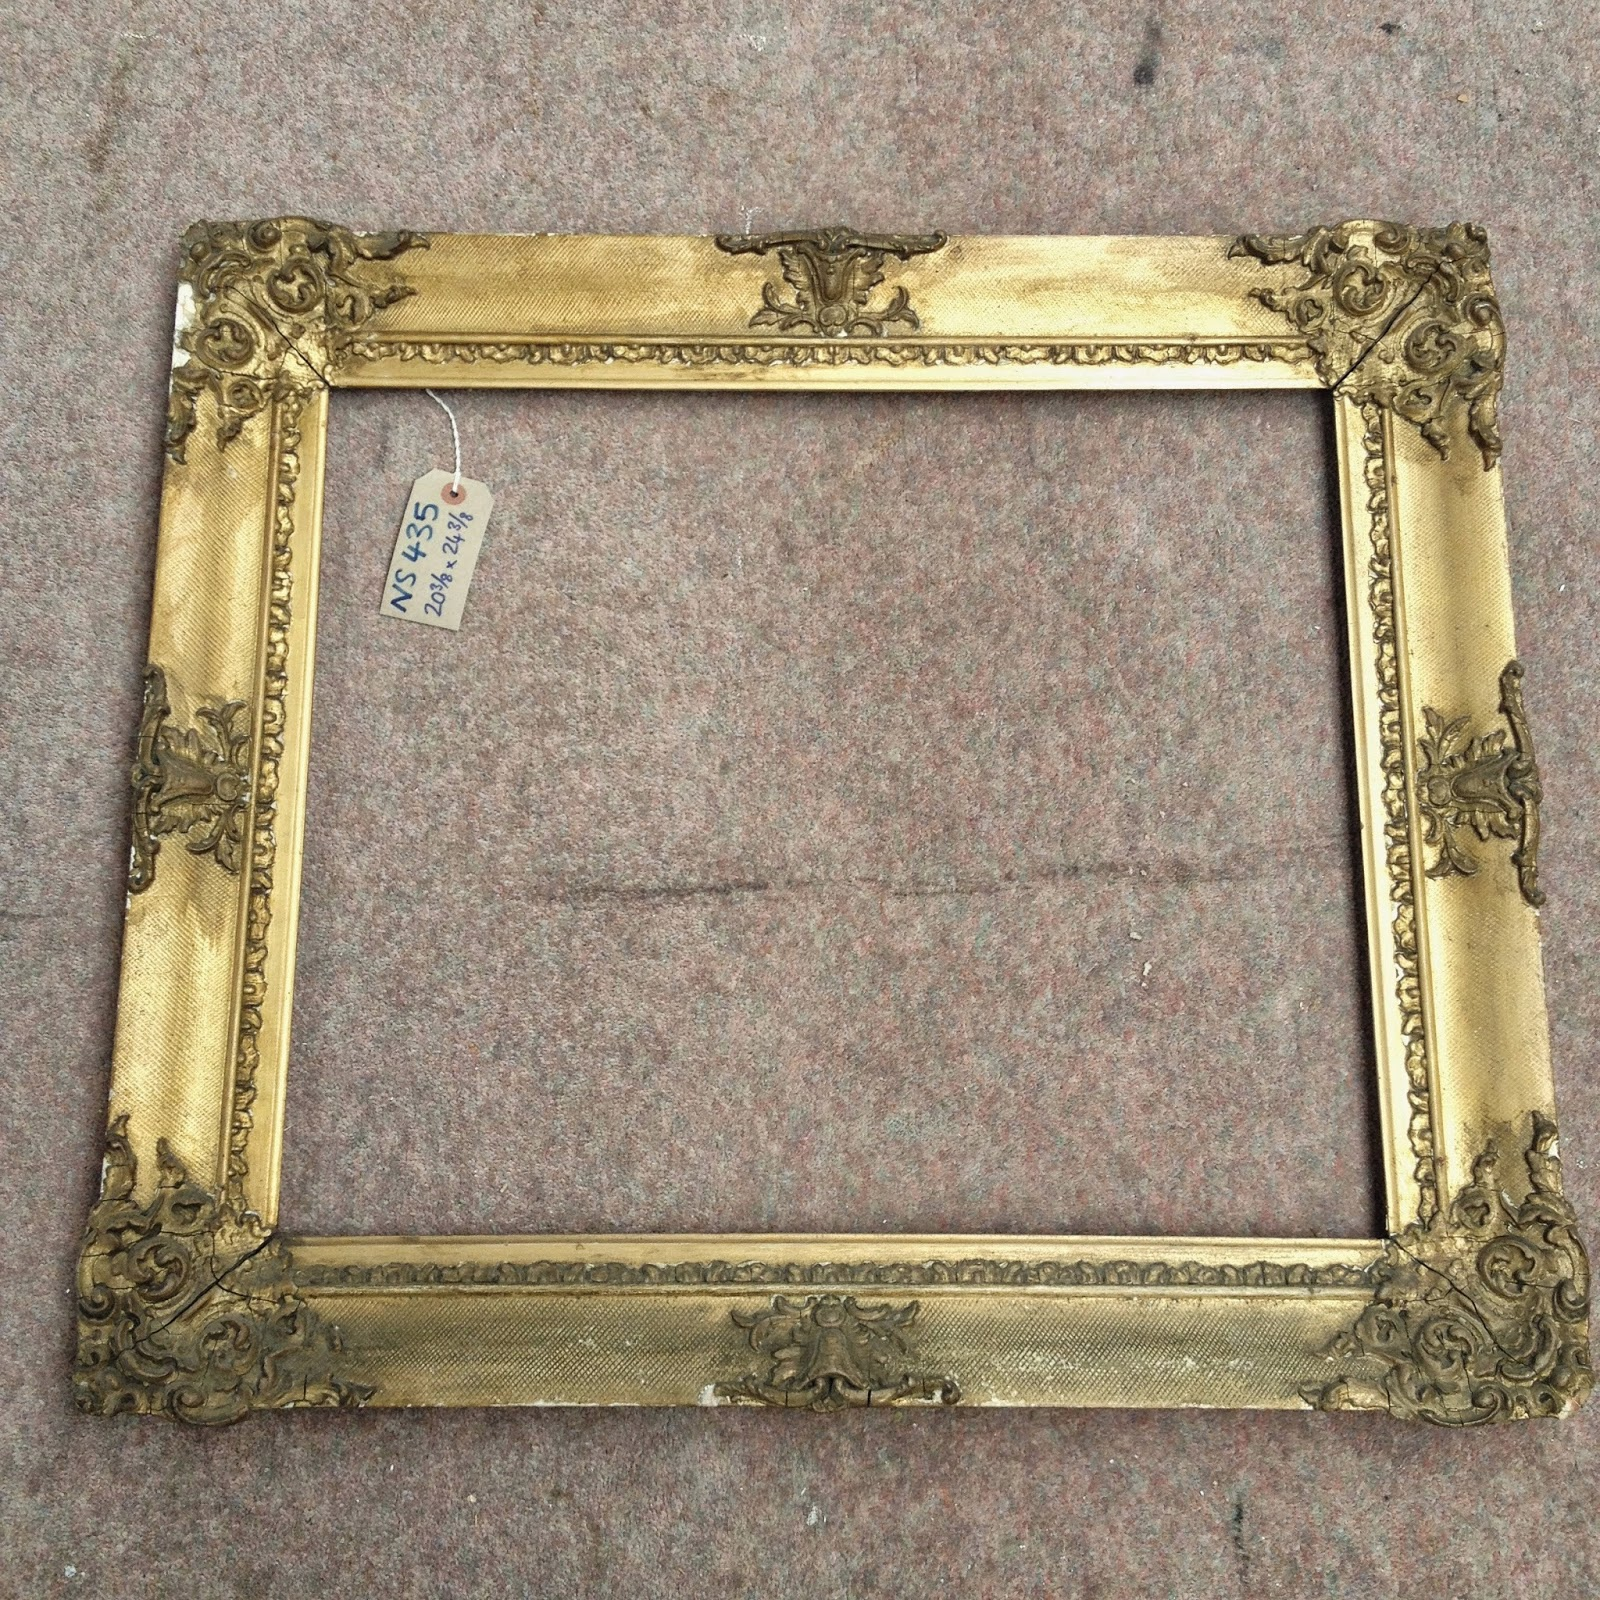 Framemaker antique 20 x 24 frames a varied selection of antique frames to fit 20 x 24 paintings prices vary from 80 to 450 ex vat jeuxipadfo Choice Image